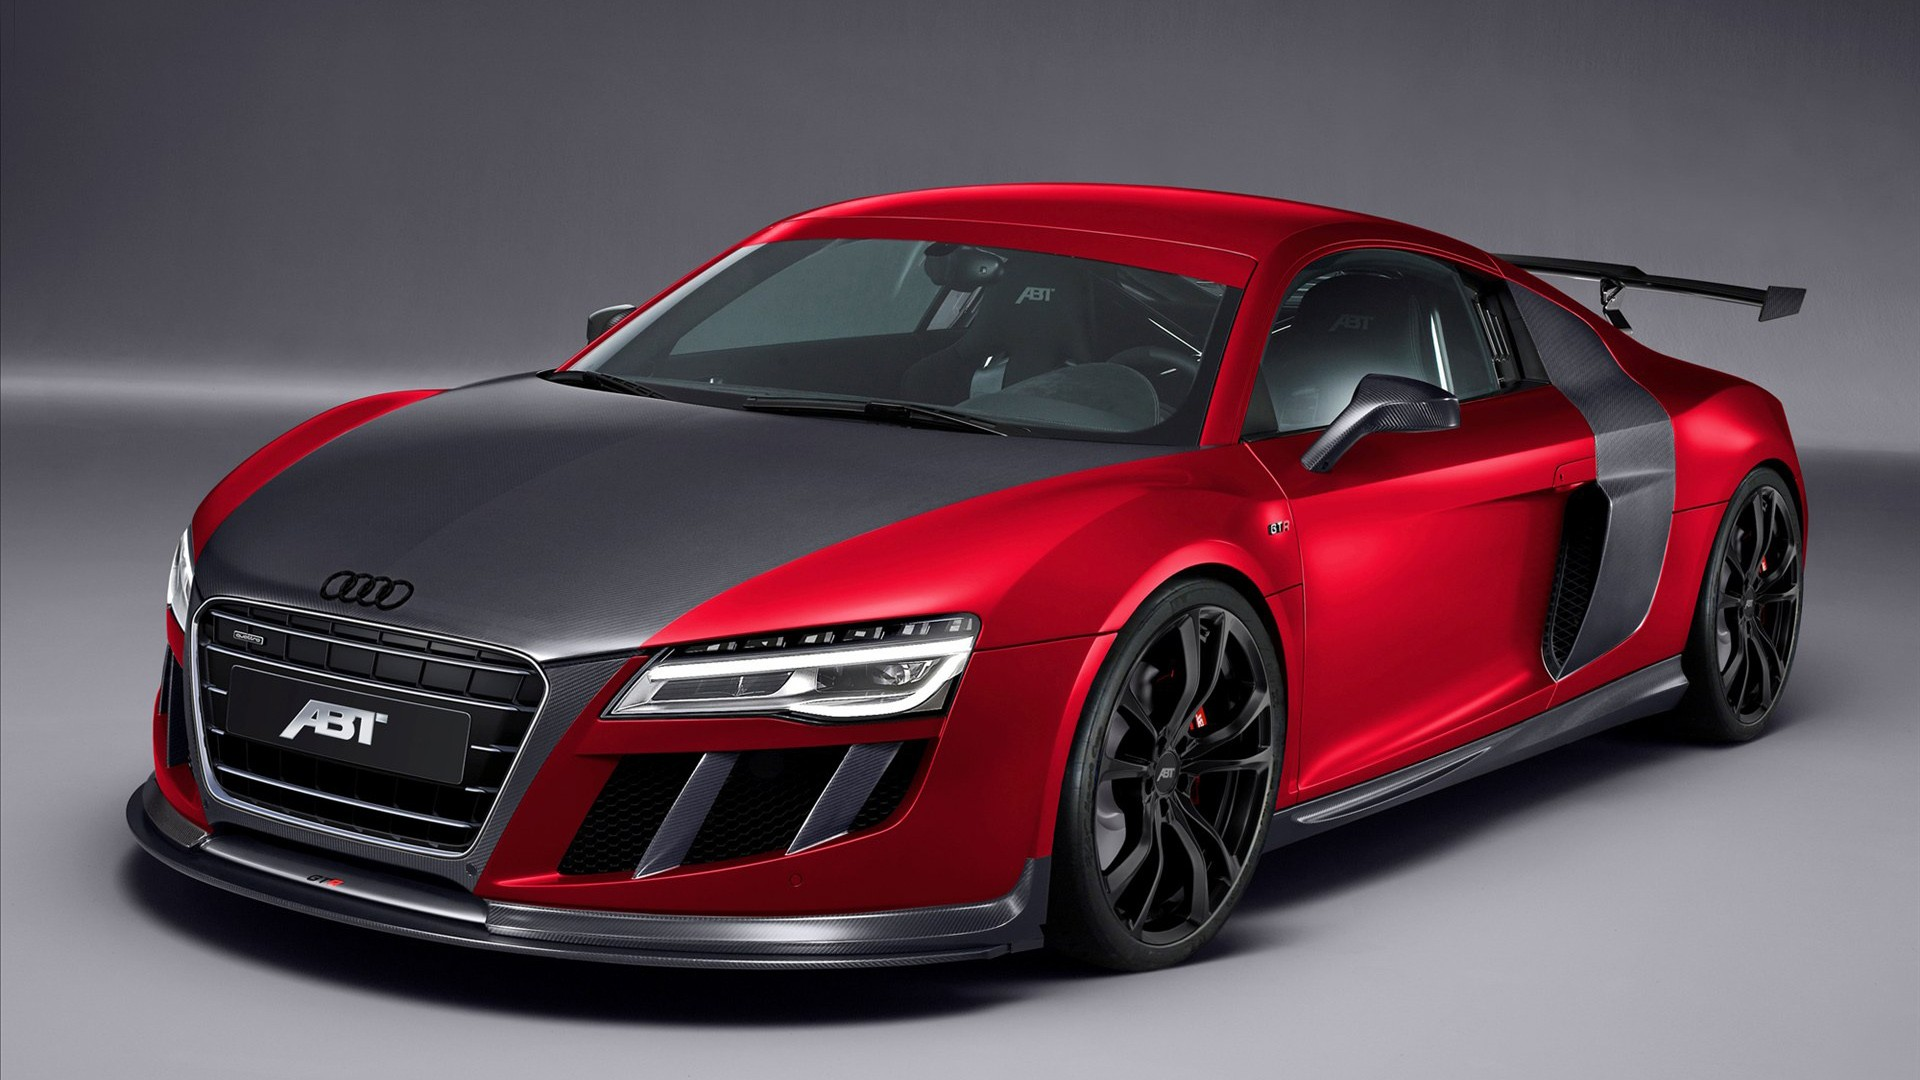 2013 abt audi r8 gtr wallpaper hd car wallpapers id 3306. Black Bedroom Furniture Sets. Home Design Ideas